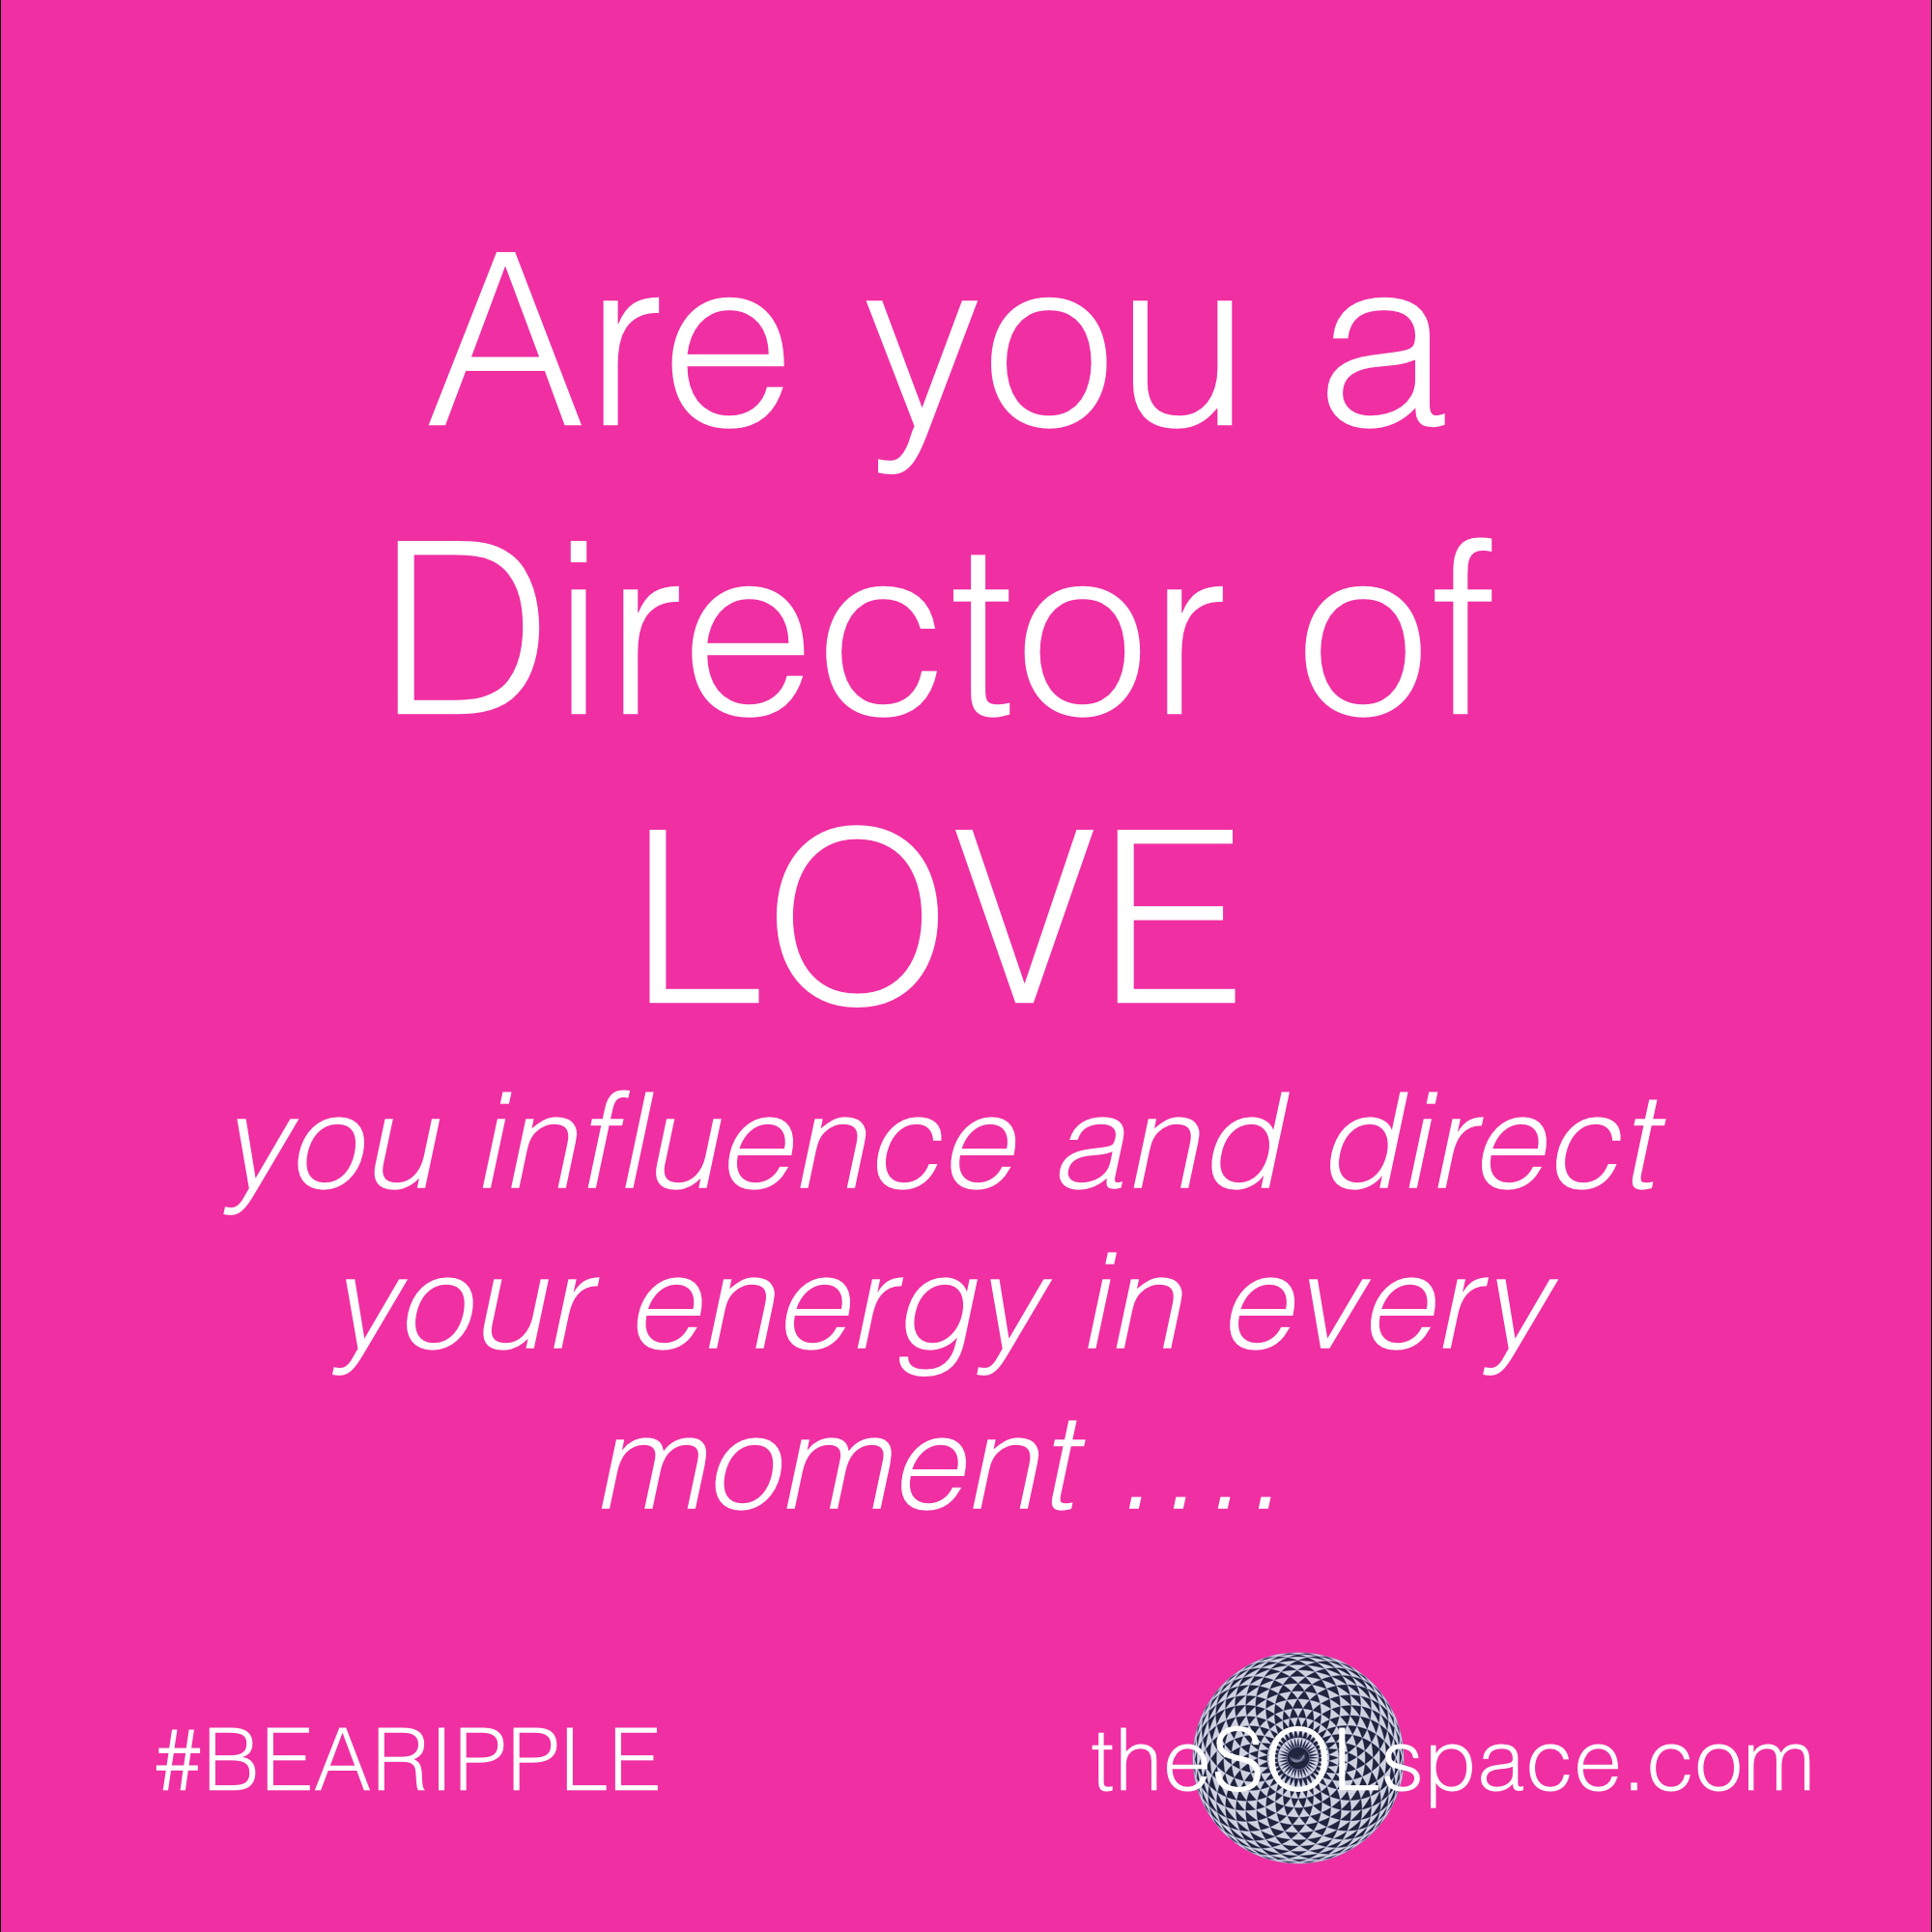 #BeARipple..Are you a director of Love? You influence & direct your energy in every moment @theSOLspace